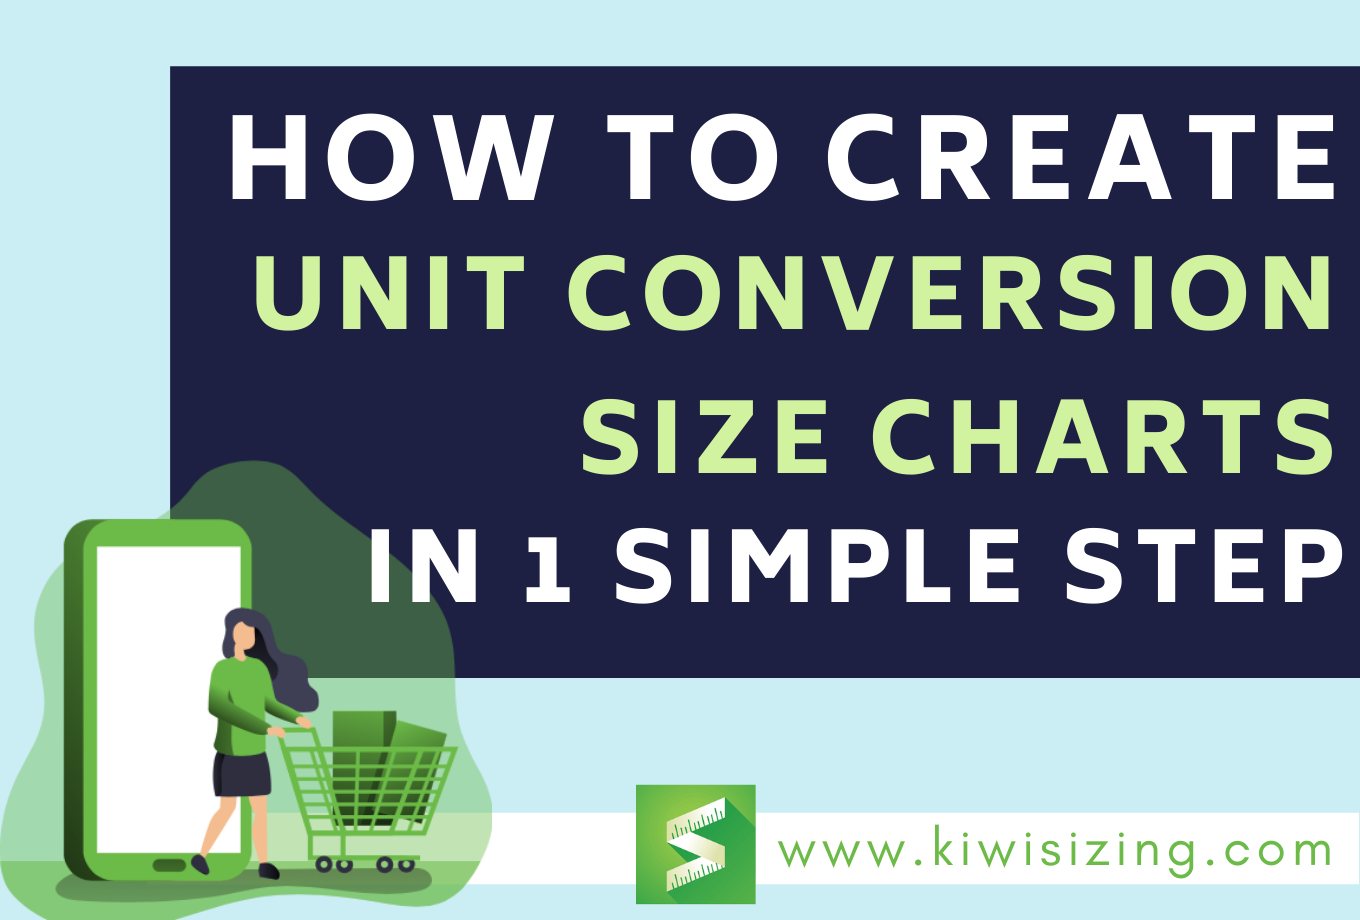 Create unit conversion size charts in 1 simple step